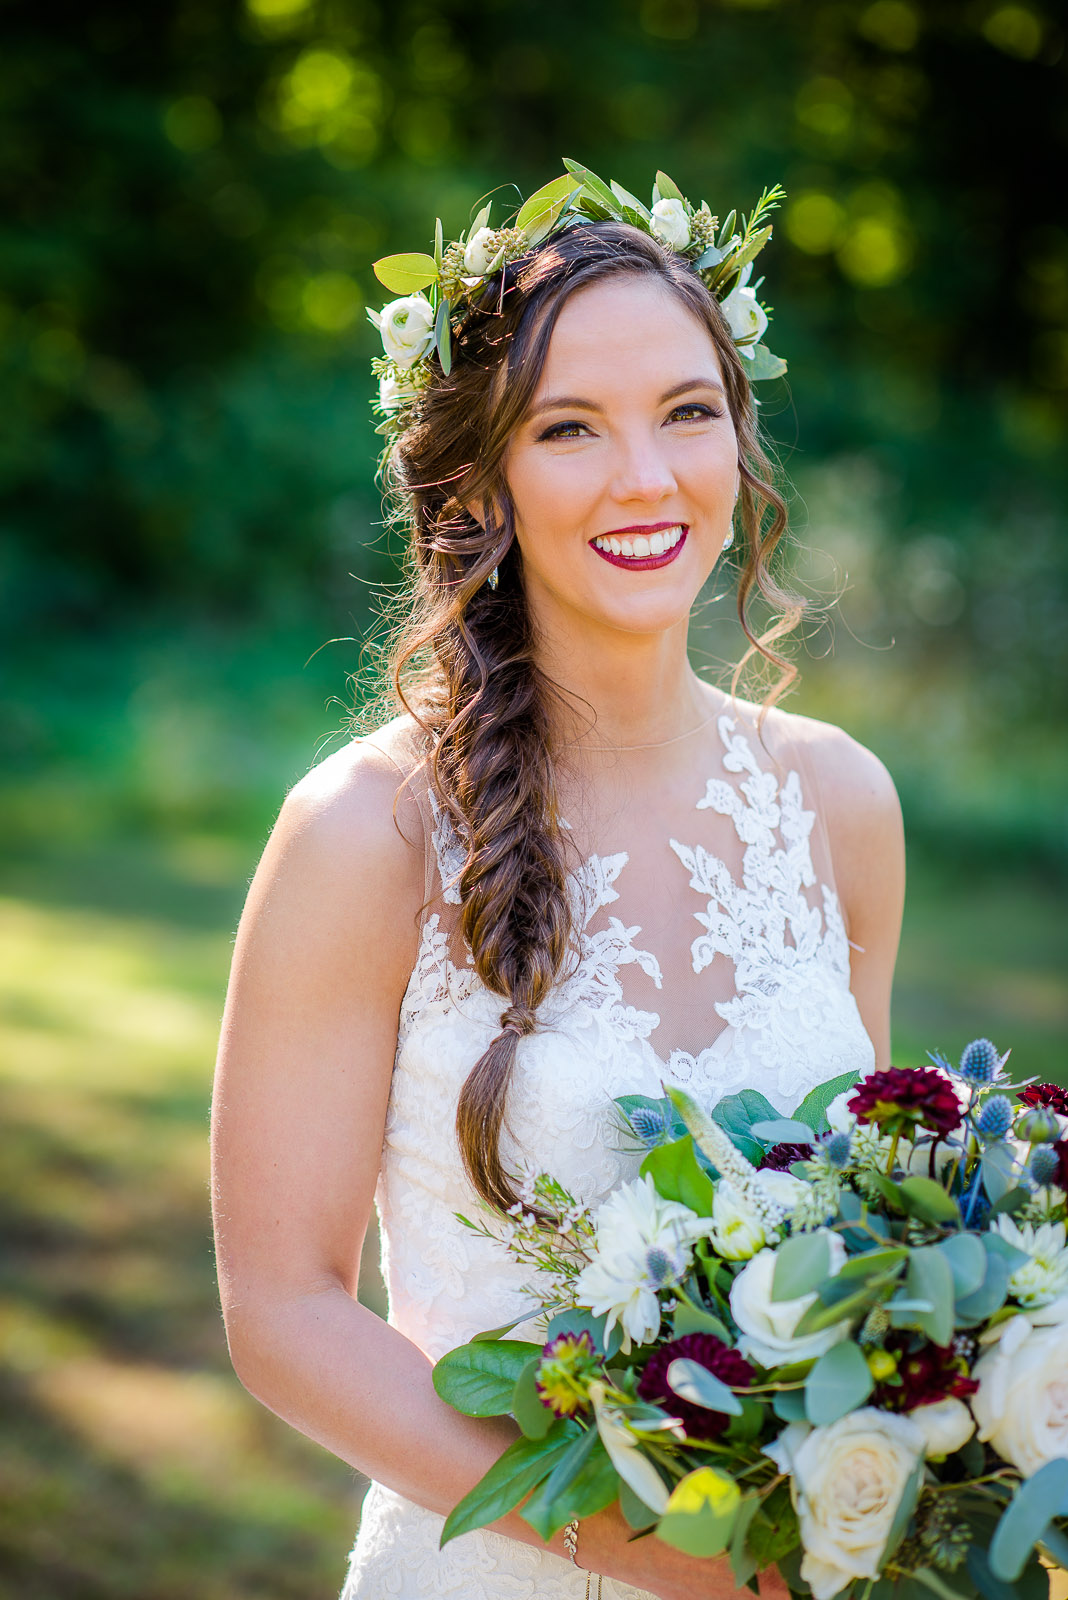 Eric_and_Christy_Photography_Blog_2018_Portraits-18